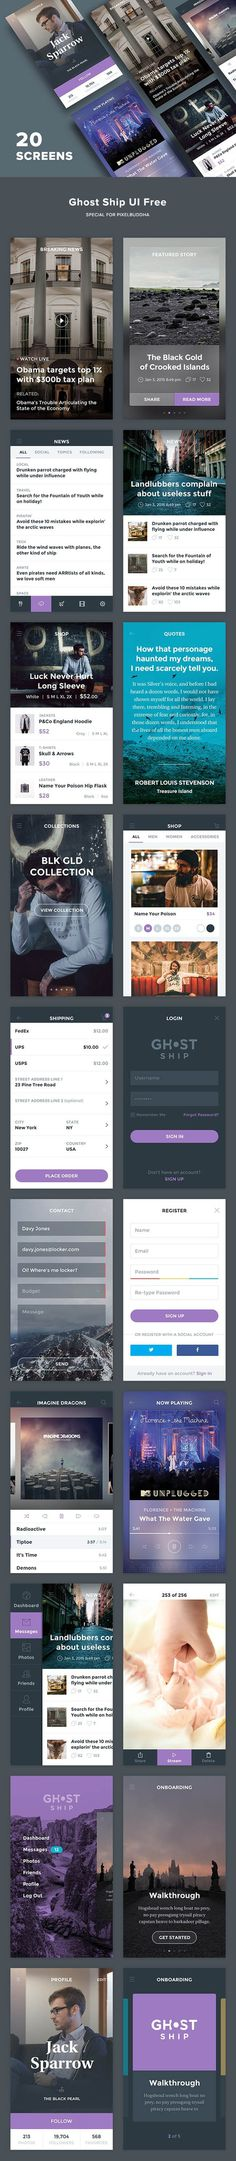 Free Ghost Ship Mobile UI Kit PSD template